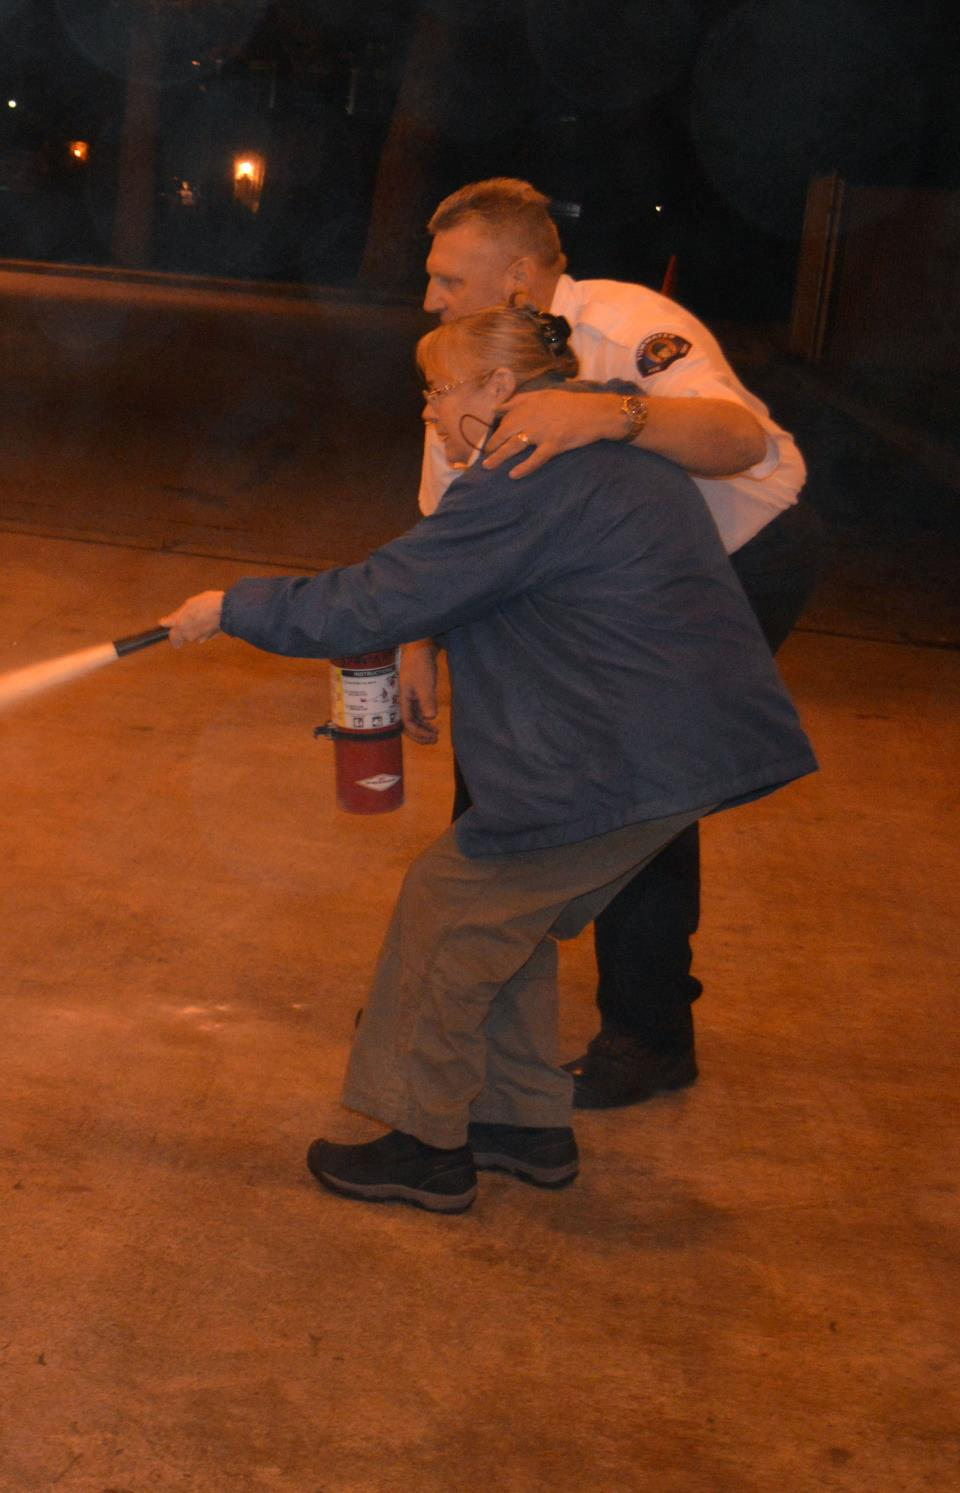 2016-02-23 Fire Chief and Woman Use Fire Extinguisher cropped